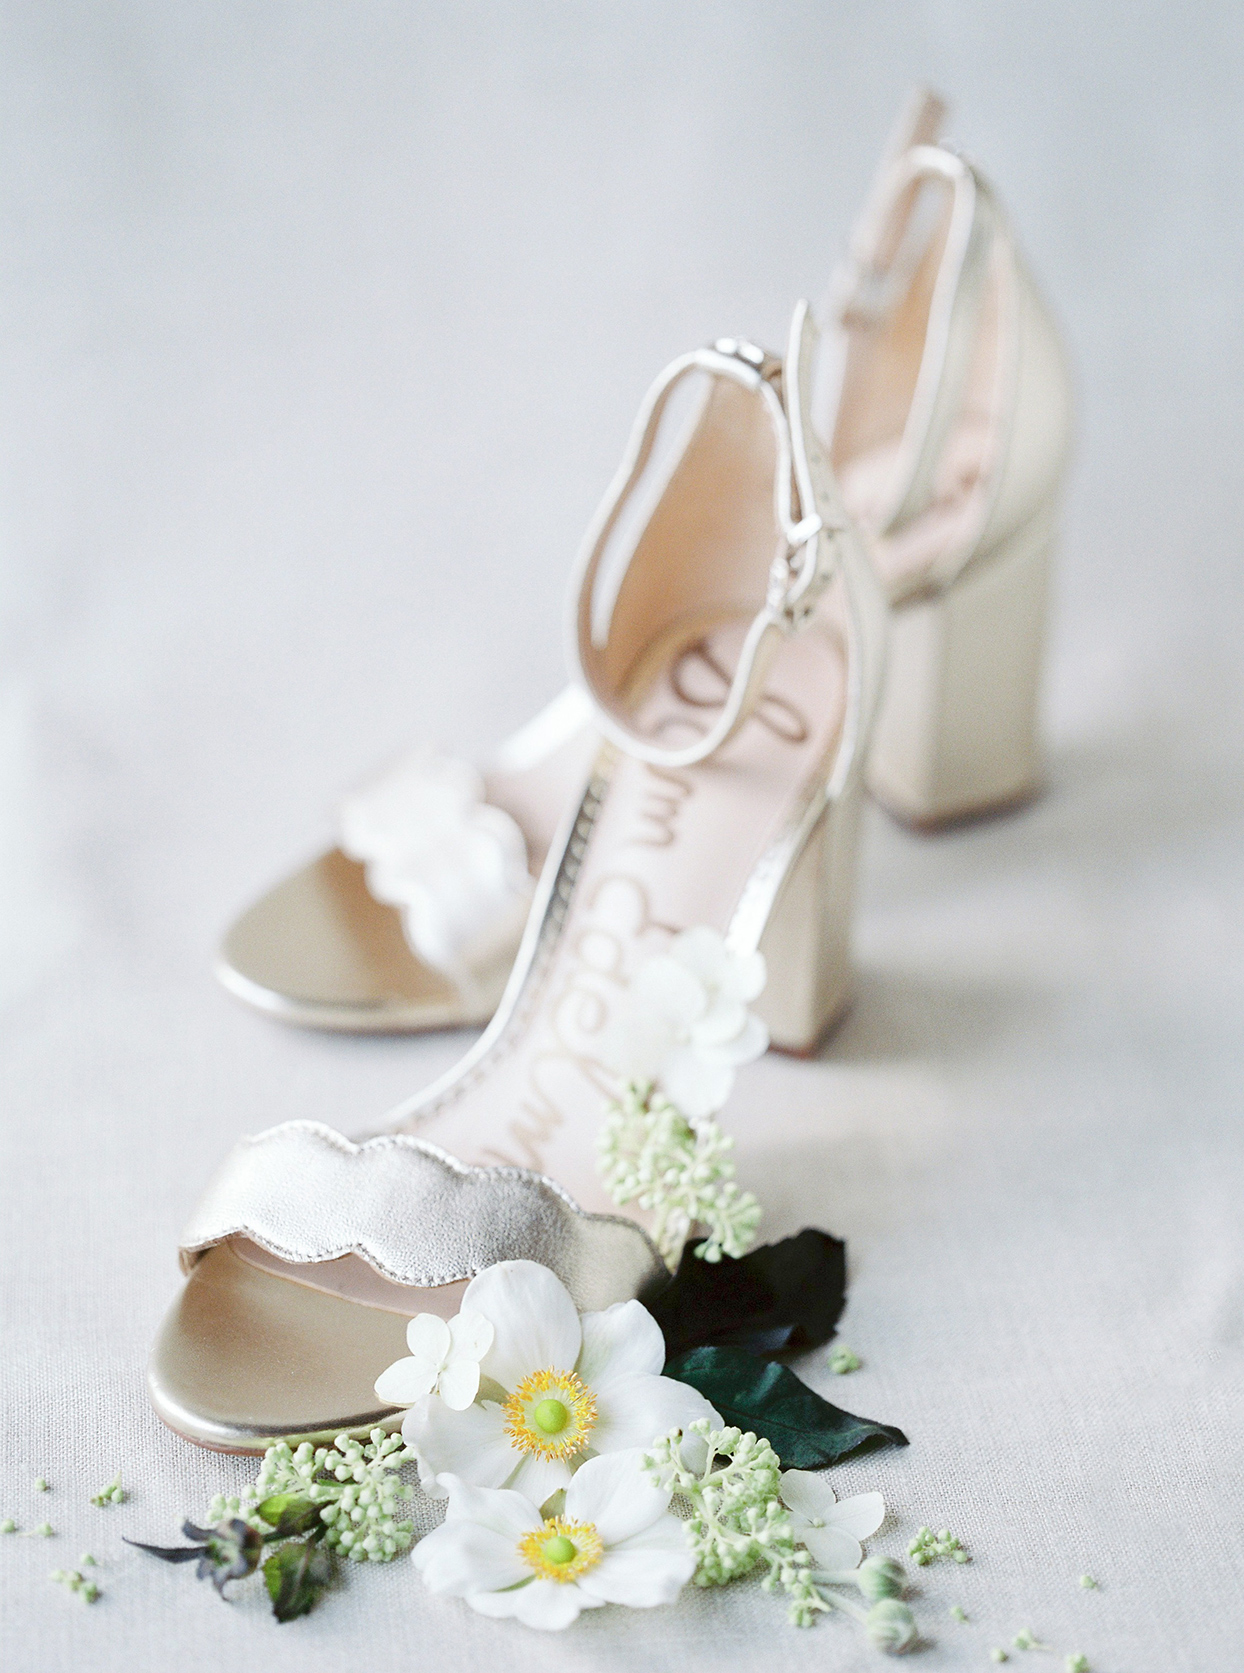 alyssa macia wedding bride's shoes